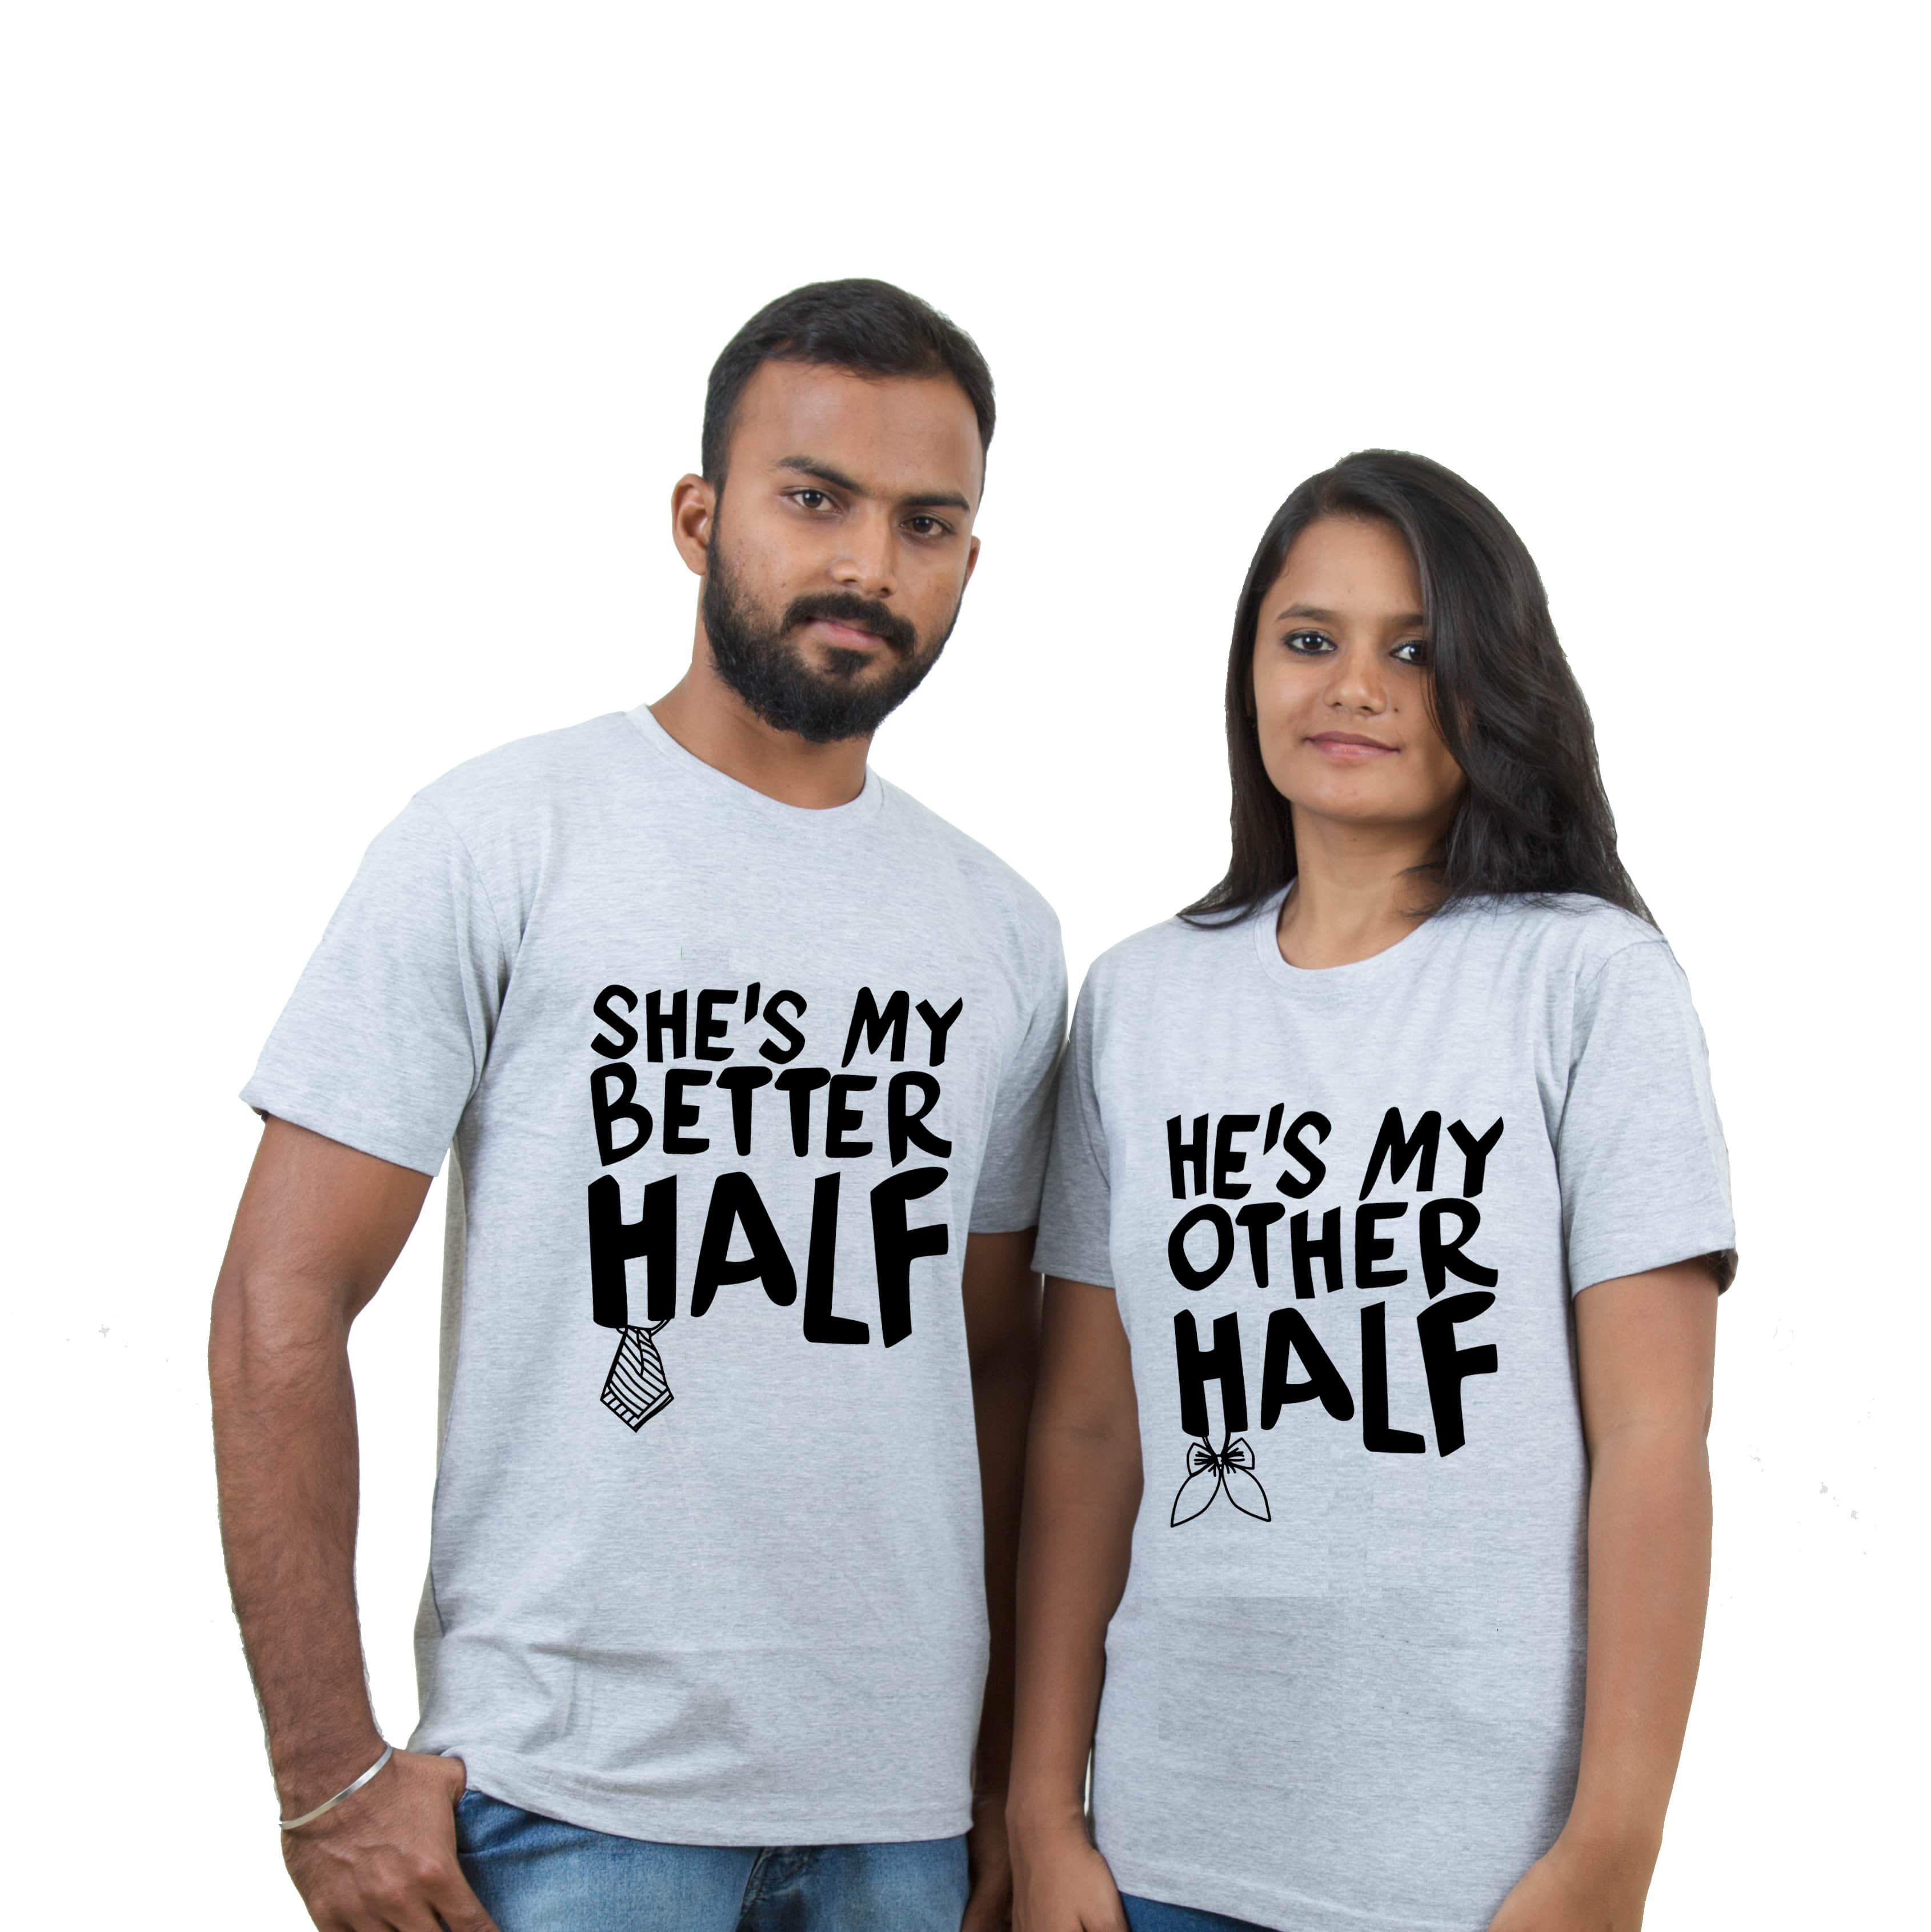 reputable site 7a82f e2216 Indian Aurochs He's & She's My Better Half Couple T-Shirts